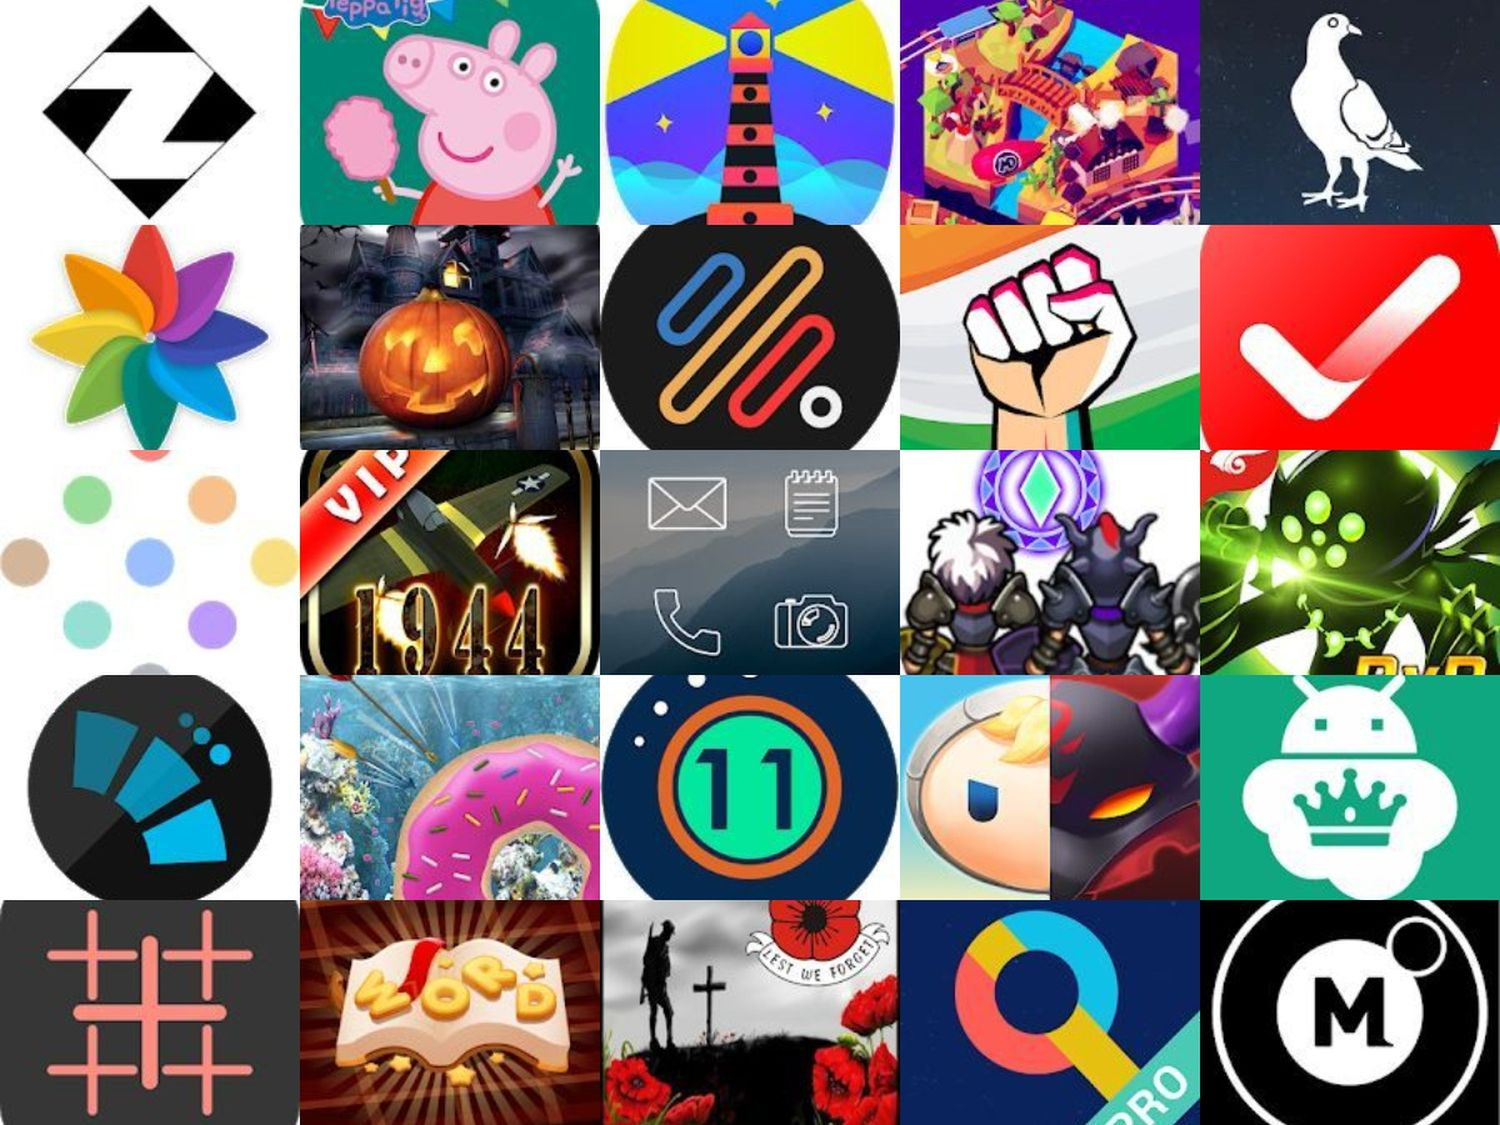 apps 27.09.2020